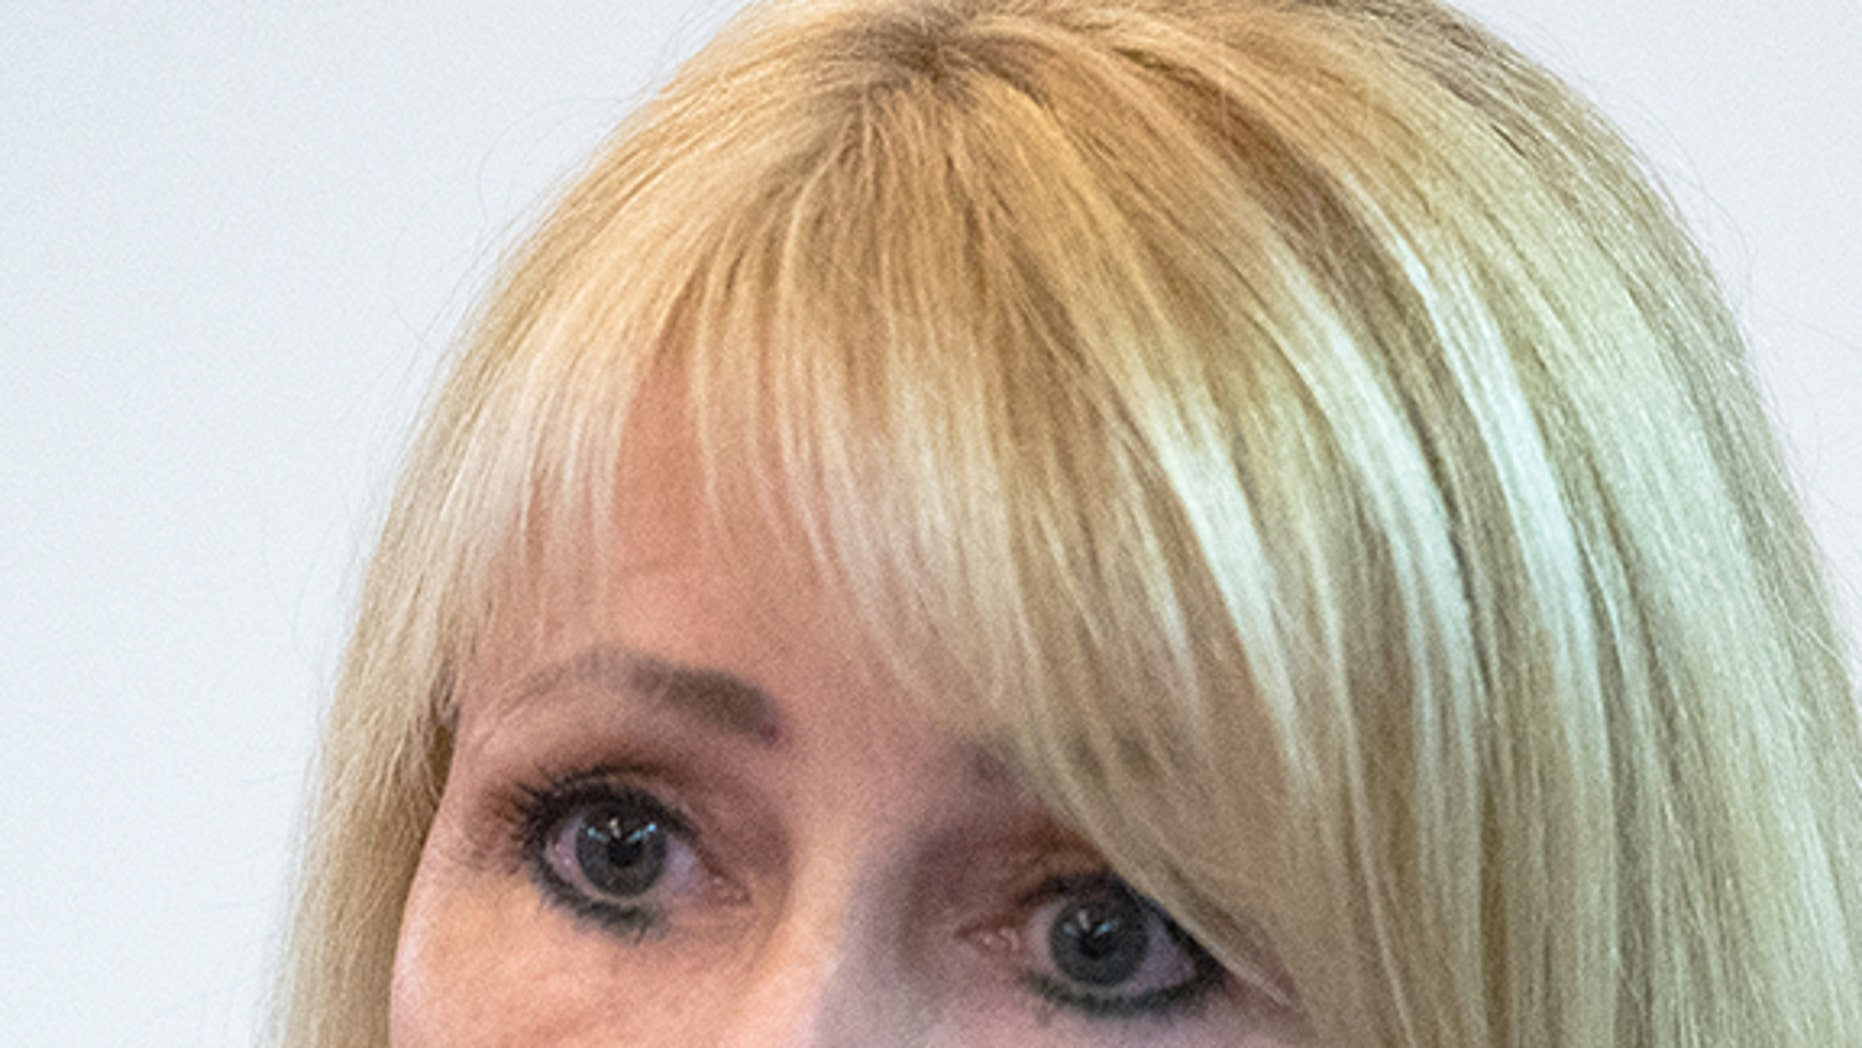 Outgoing San Juan Capistrano city councilwoman Pam Patterson cited the right-wing QAnon conspiracy group in her farewell address.